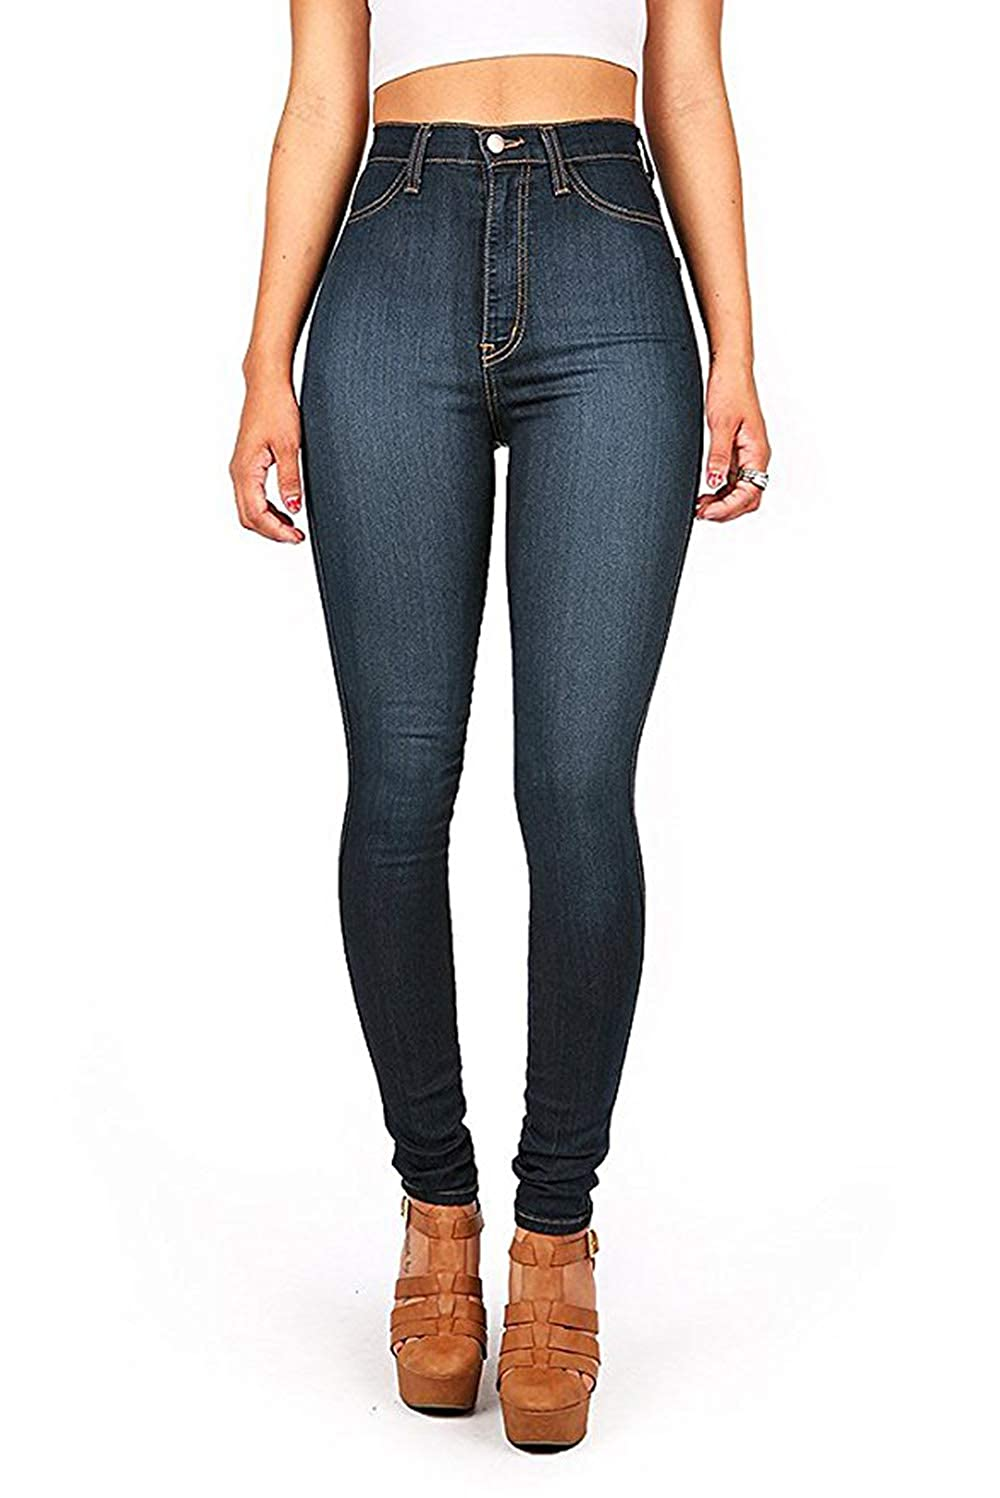 Dark Stone  Skinny StyLeUp Women's Premium HighWaist Denim Skinny & Flared Jeans